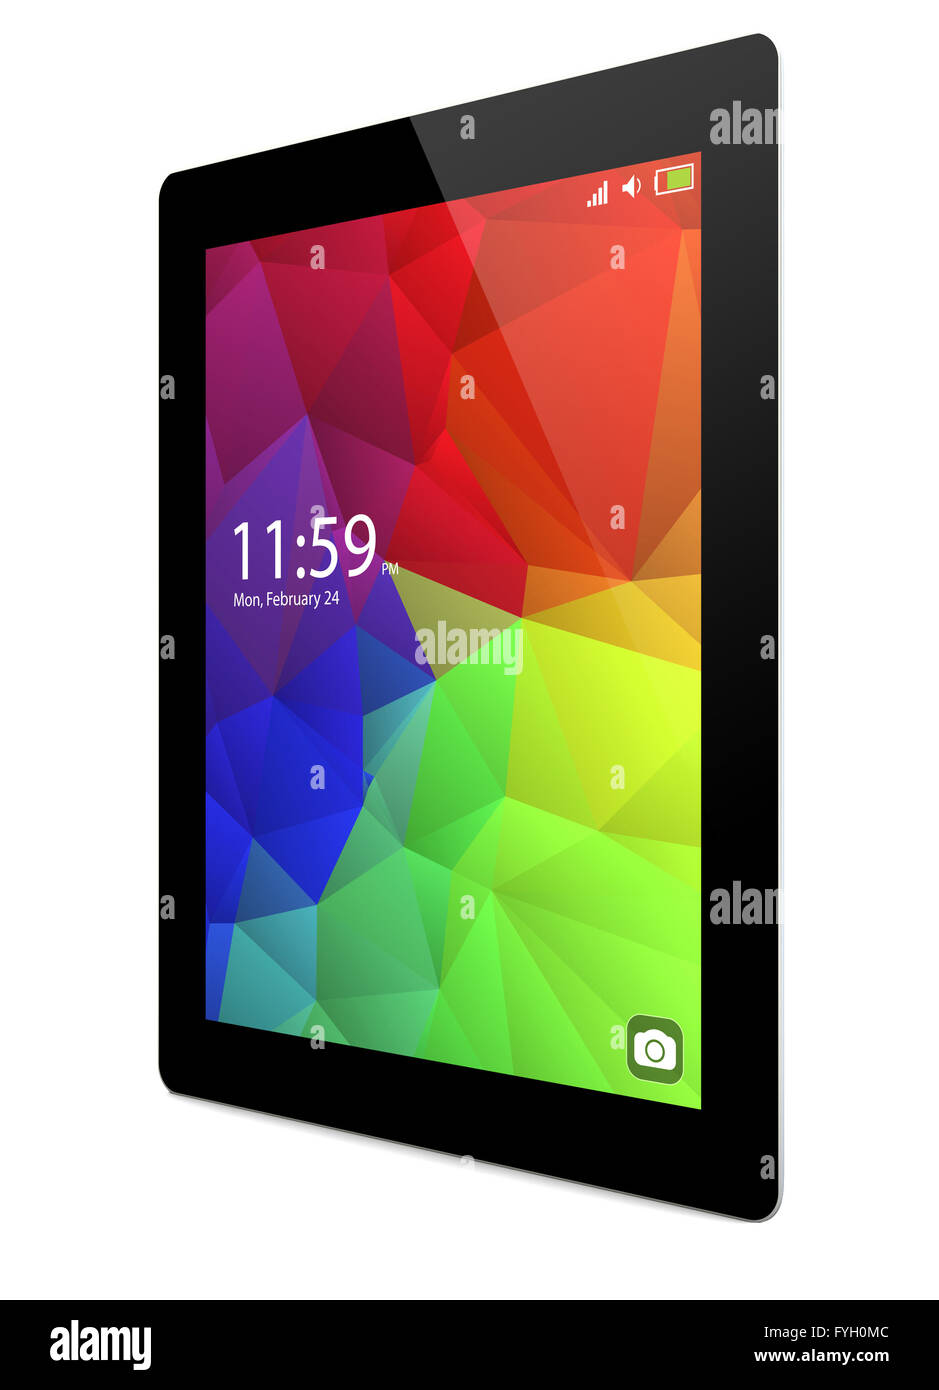 touchscreen concept: render of tablet with colorful interface - Stock Image